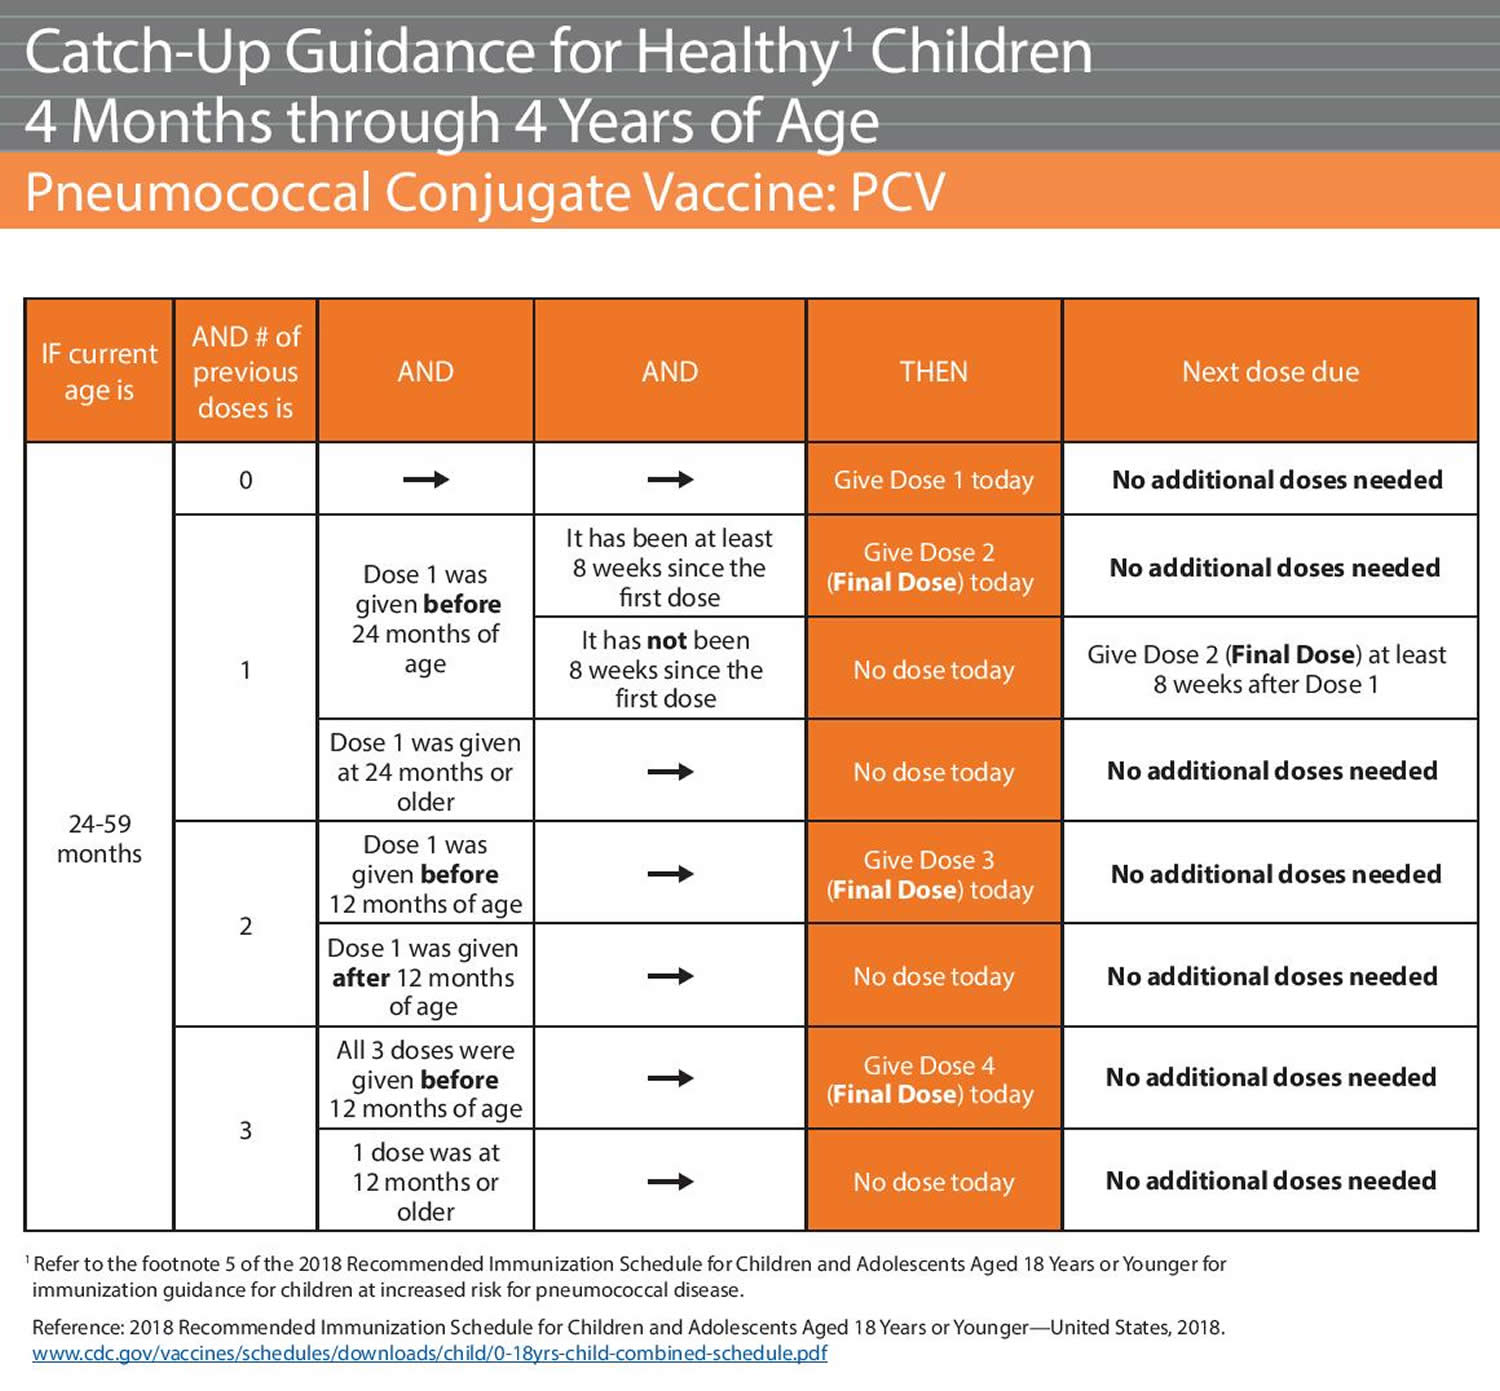 Pneumococcal vaccine Catch-Up Guidance for Healthy Children 4 Months to 4 Years of Age